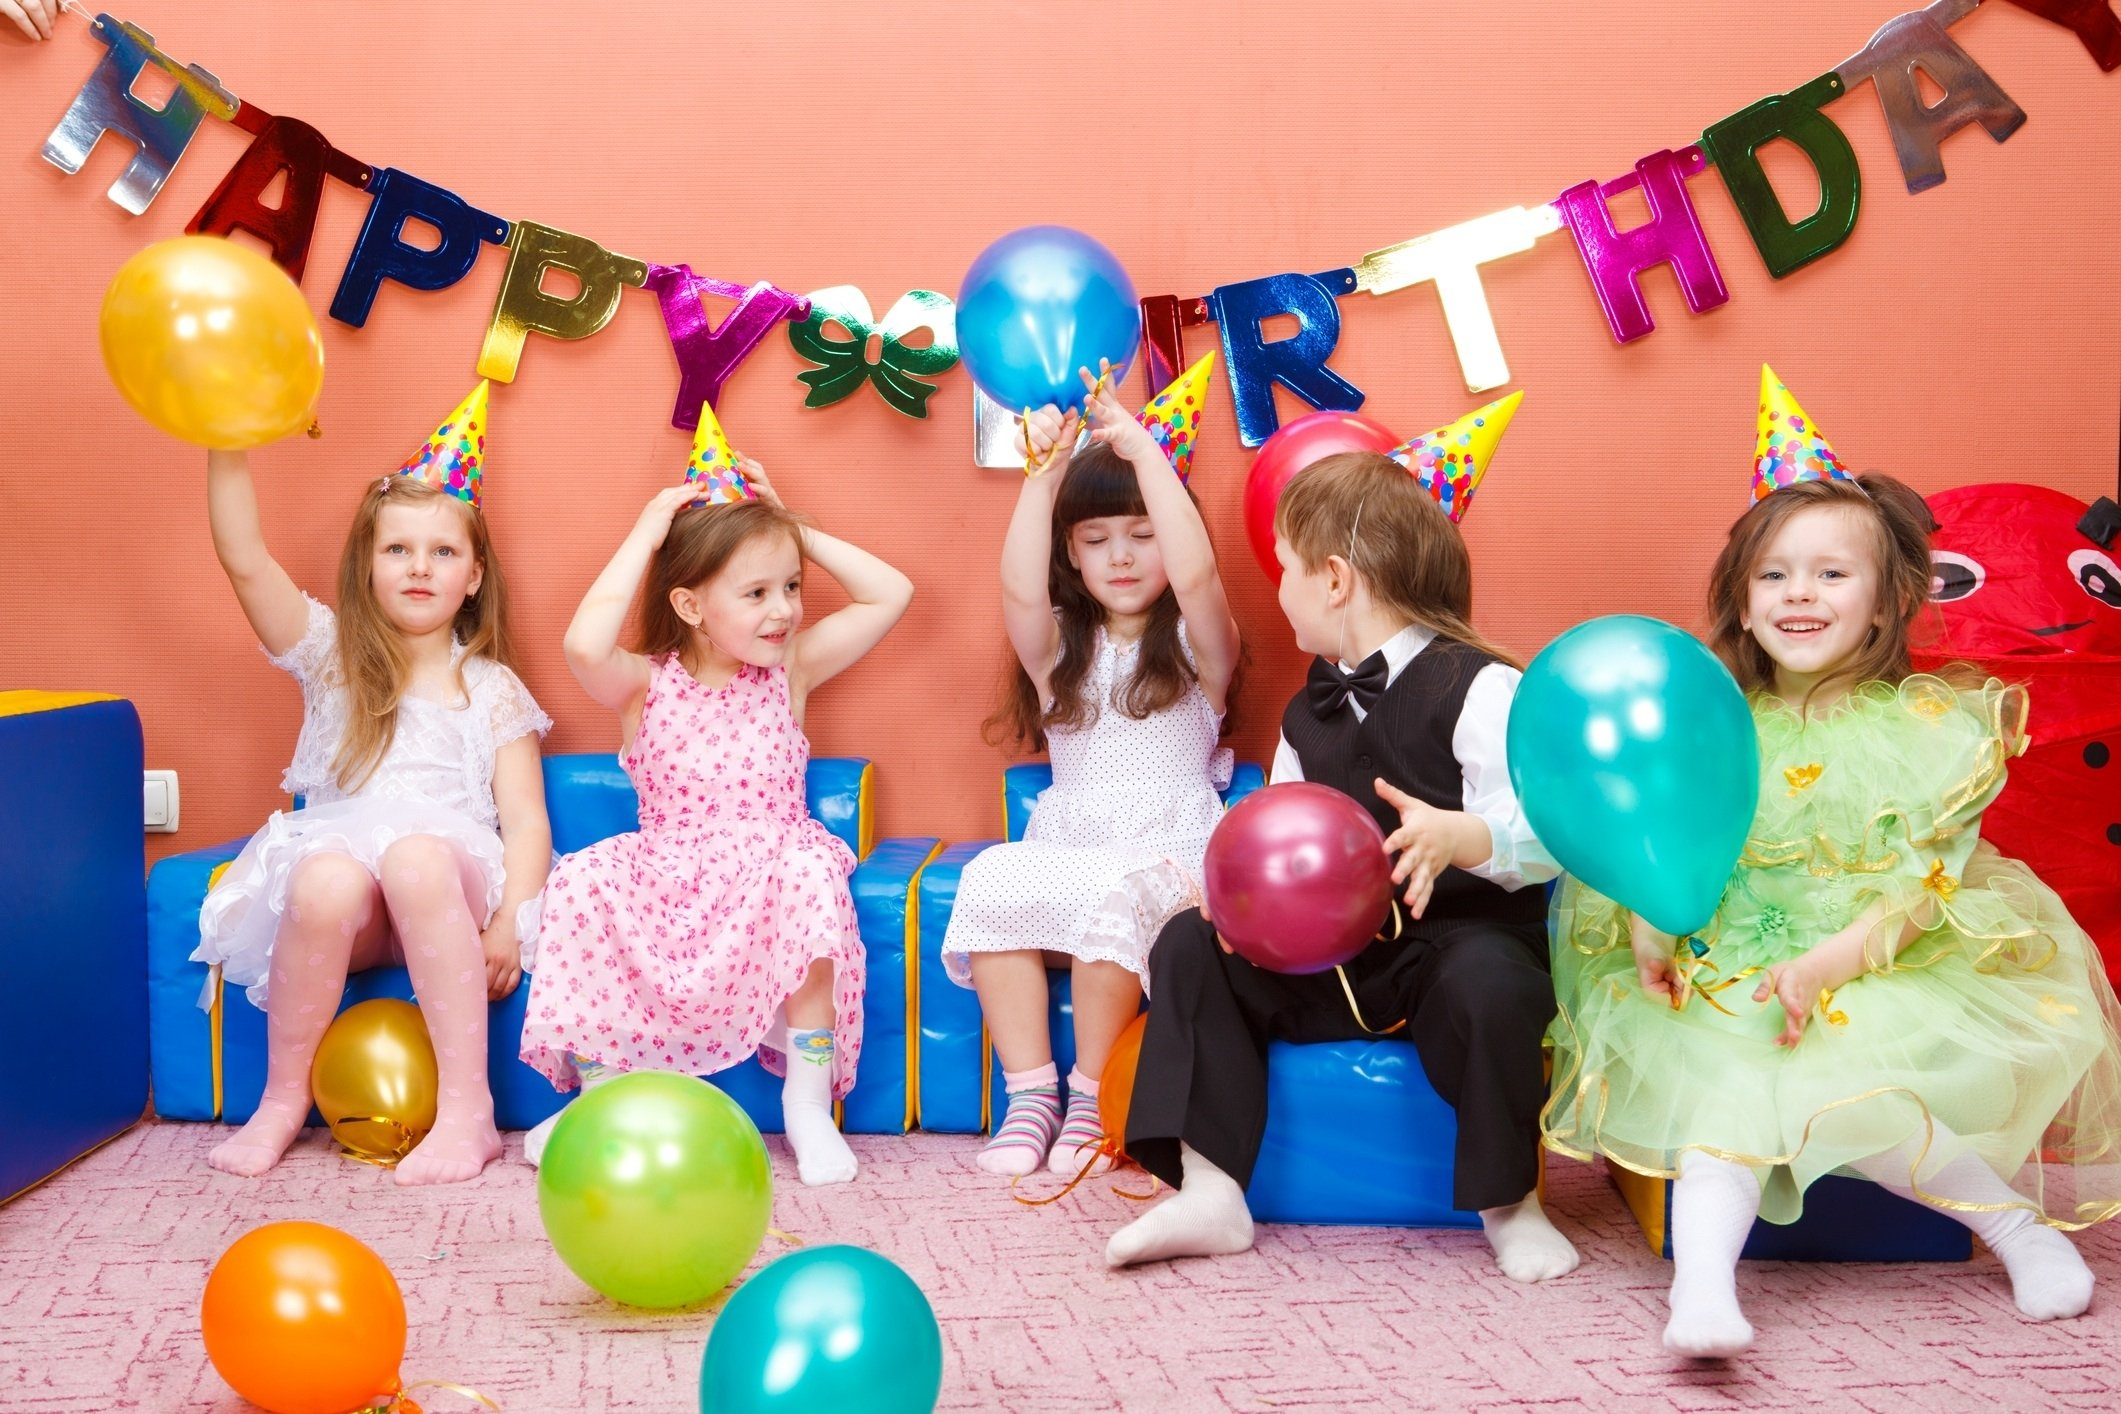 10 Famous Fun Birthday Party Ideas For 12 Year Olds 45 awesome 11 12 year old birthday party ideas birthday inspire 22 2020